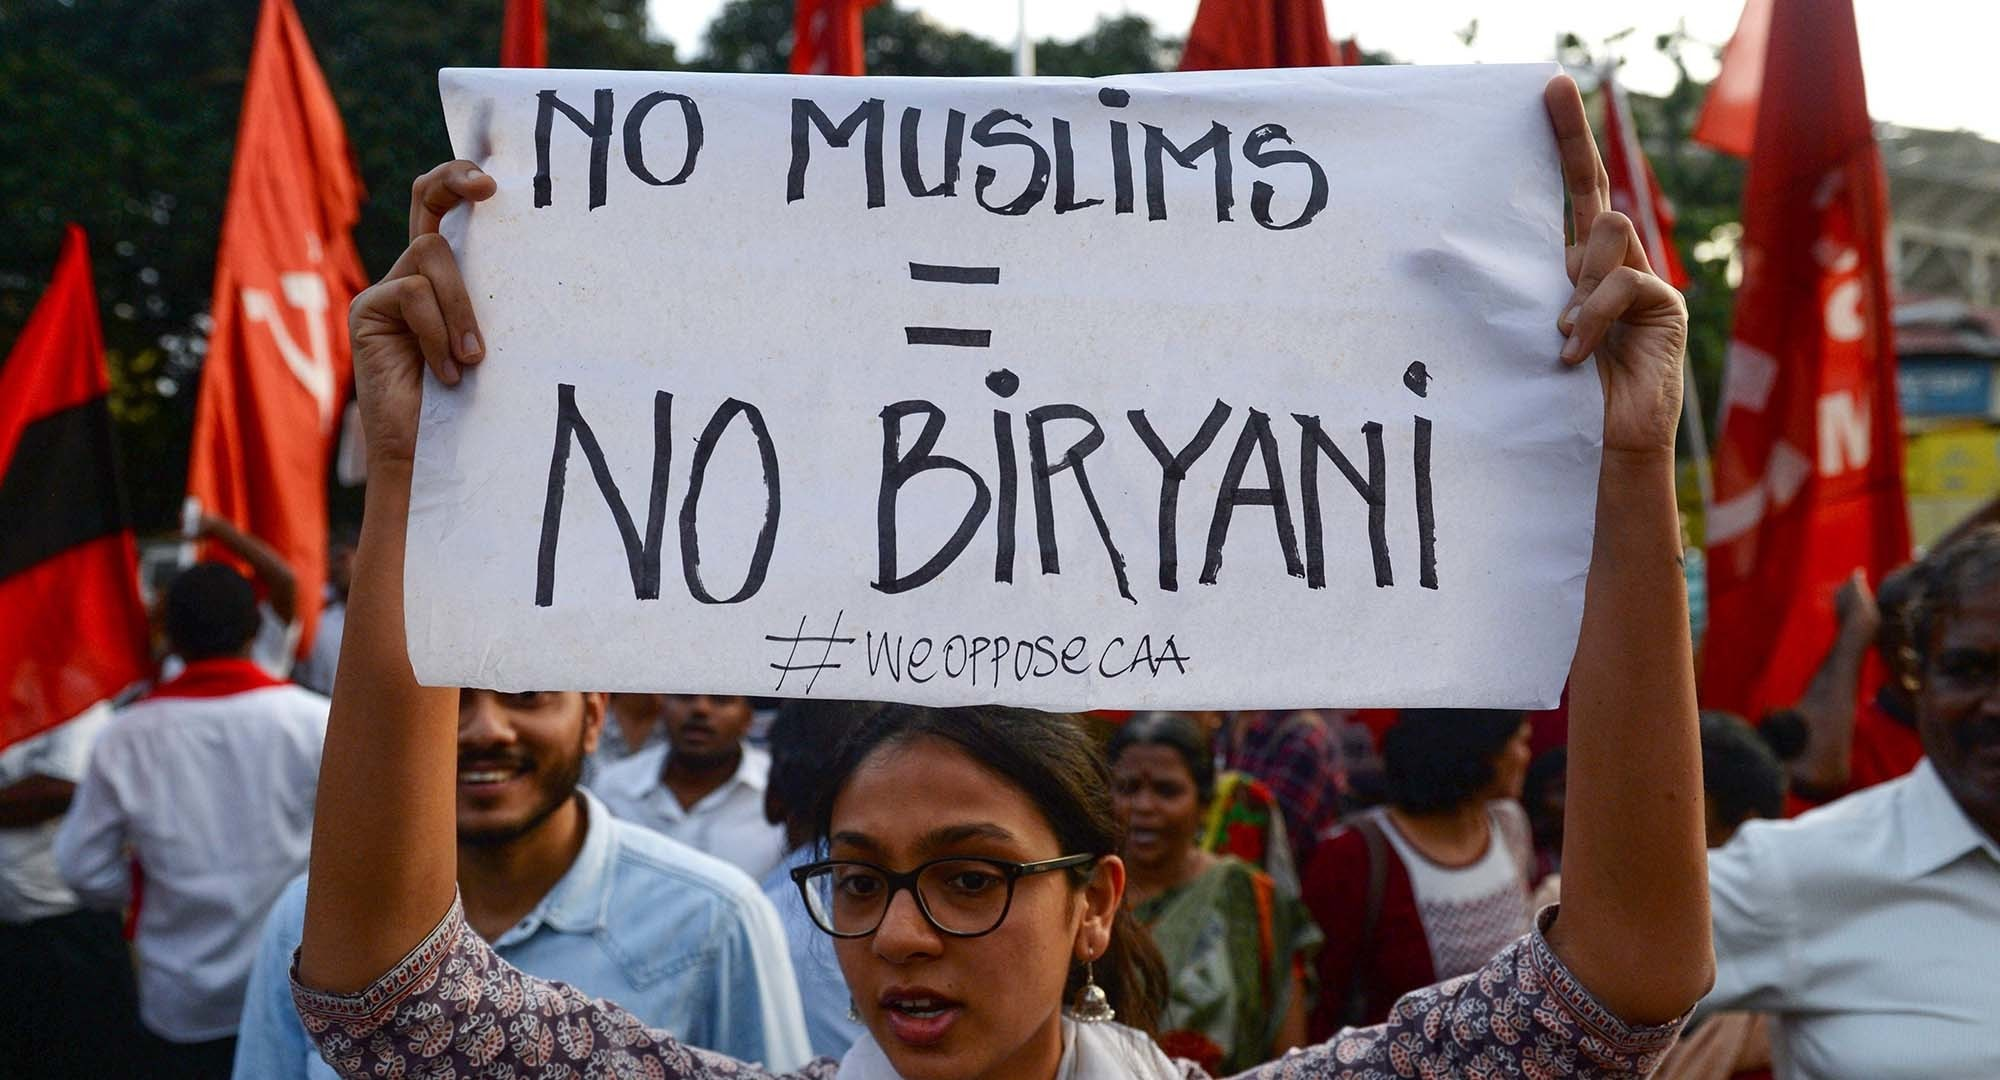 (FILES) In this file photo taken on December 16, 2019, protesters shout slogans and hold placards at a demonstration against India's new citizenship law. - From Netflix to Hitler, protesters are tapping pop culture and history as they vent their anger against Prime Minister Narendra Modi's new citizenship law -- and with deft use of India's beloved acronyms. (Photo by Arun SANKAR / AFP) — AFP or licensors